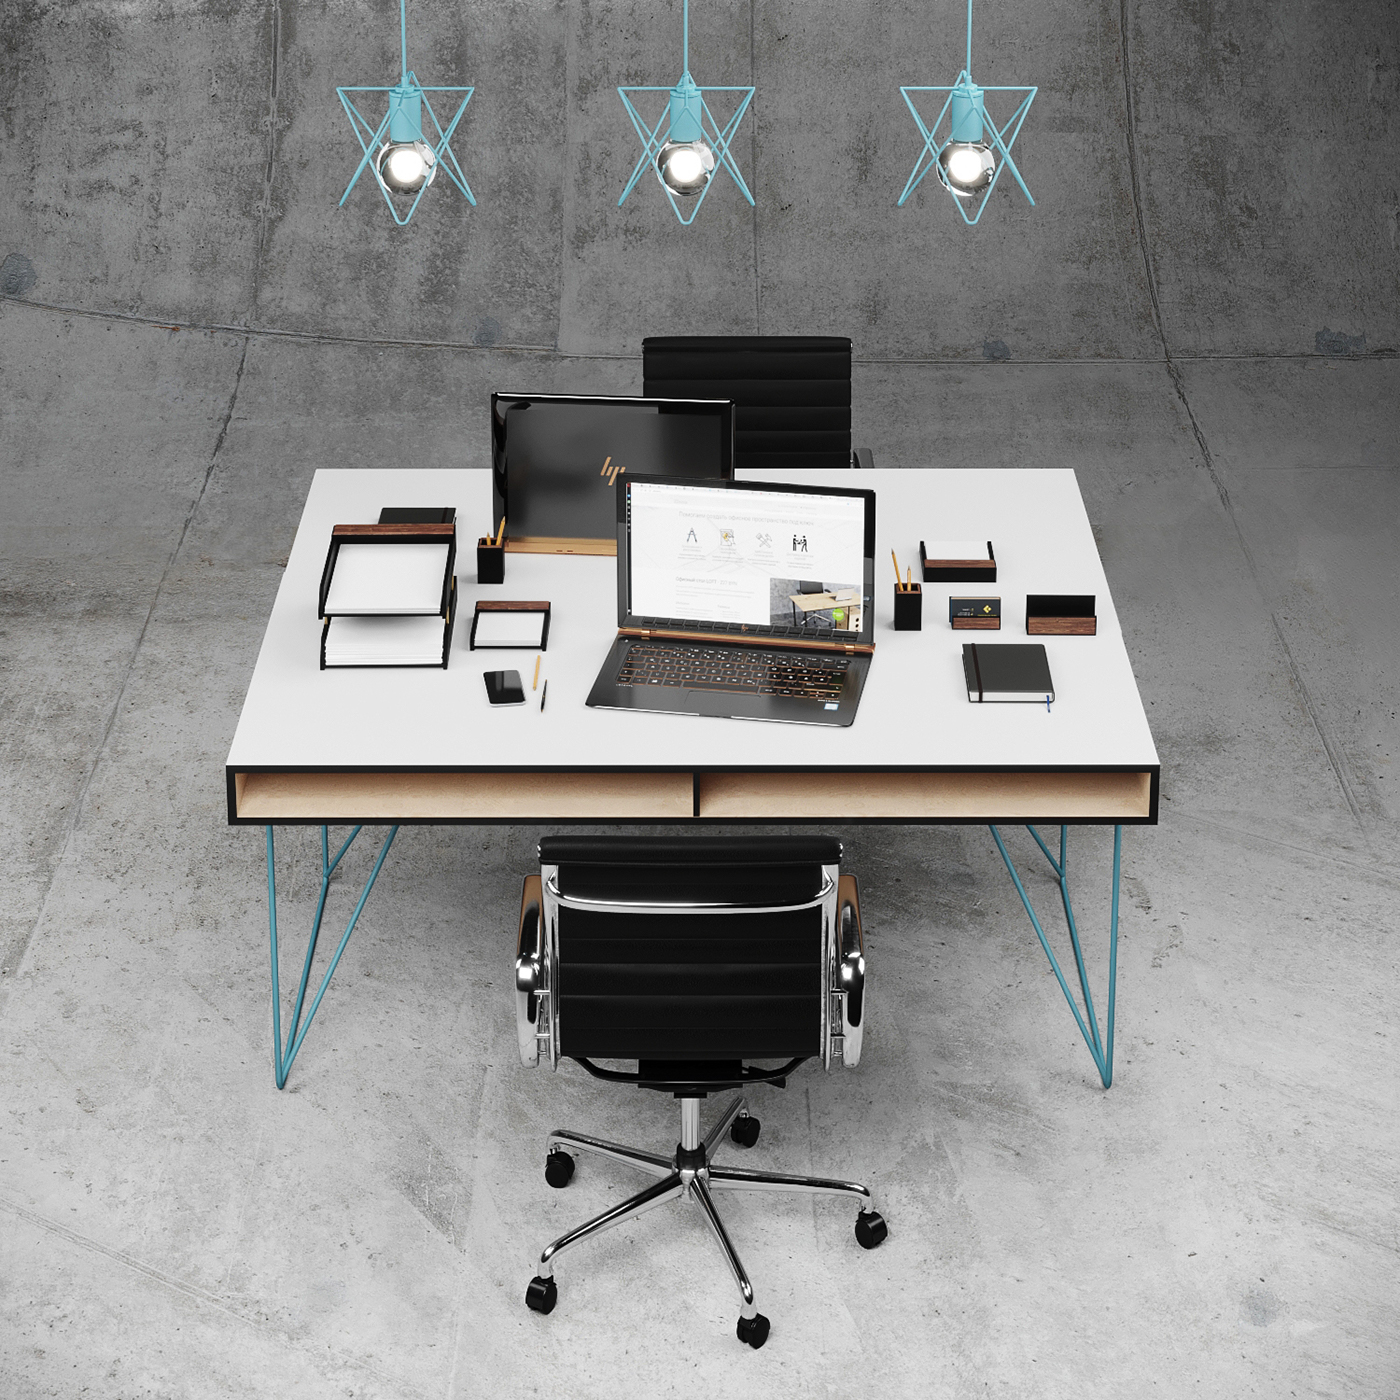 Office Furniture Collection: Office Furniture Collection On Behance